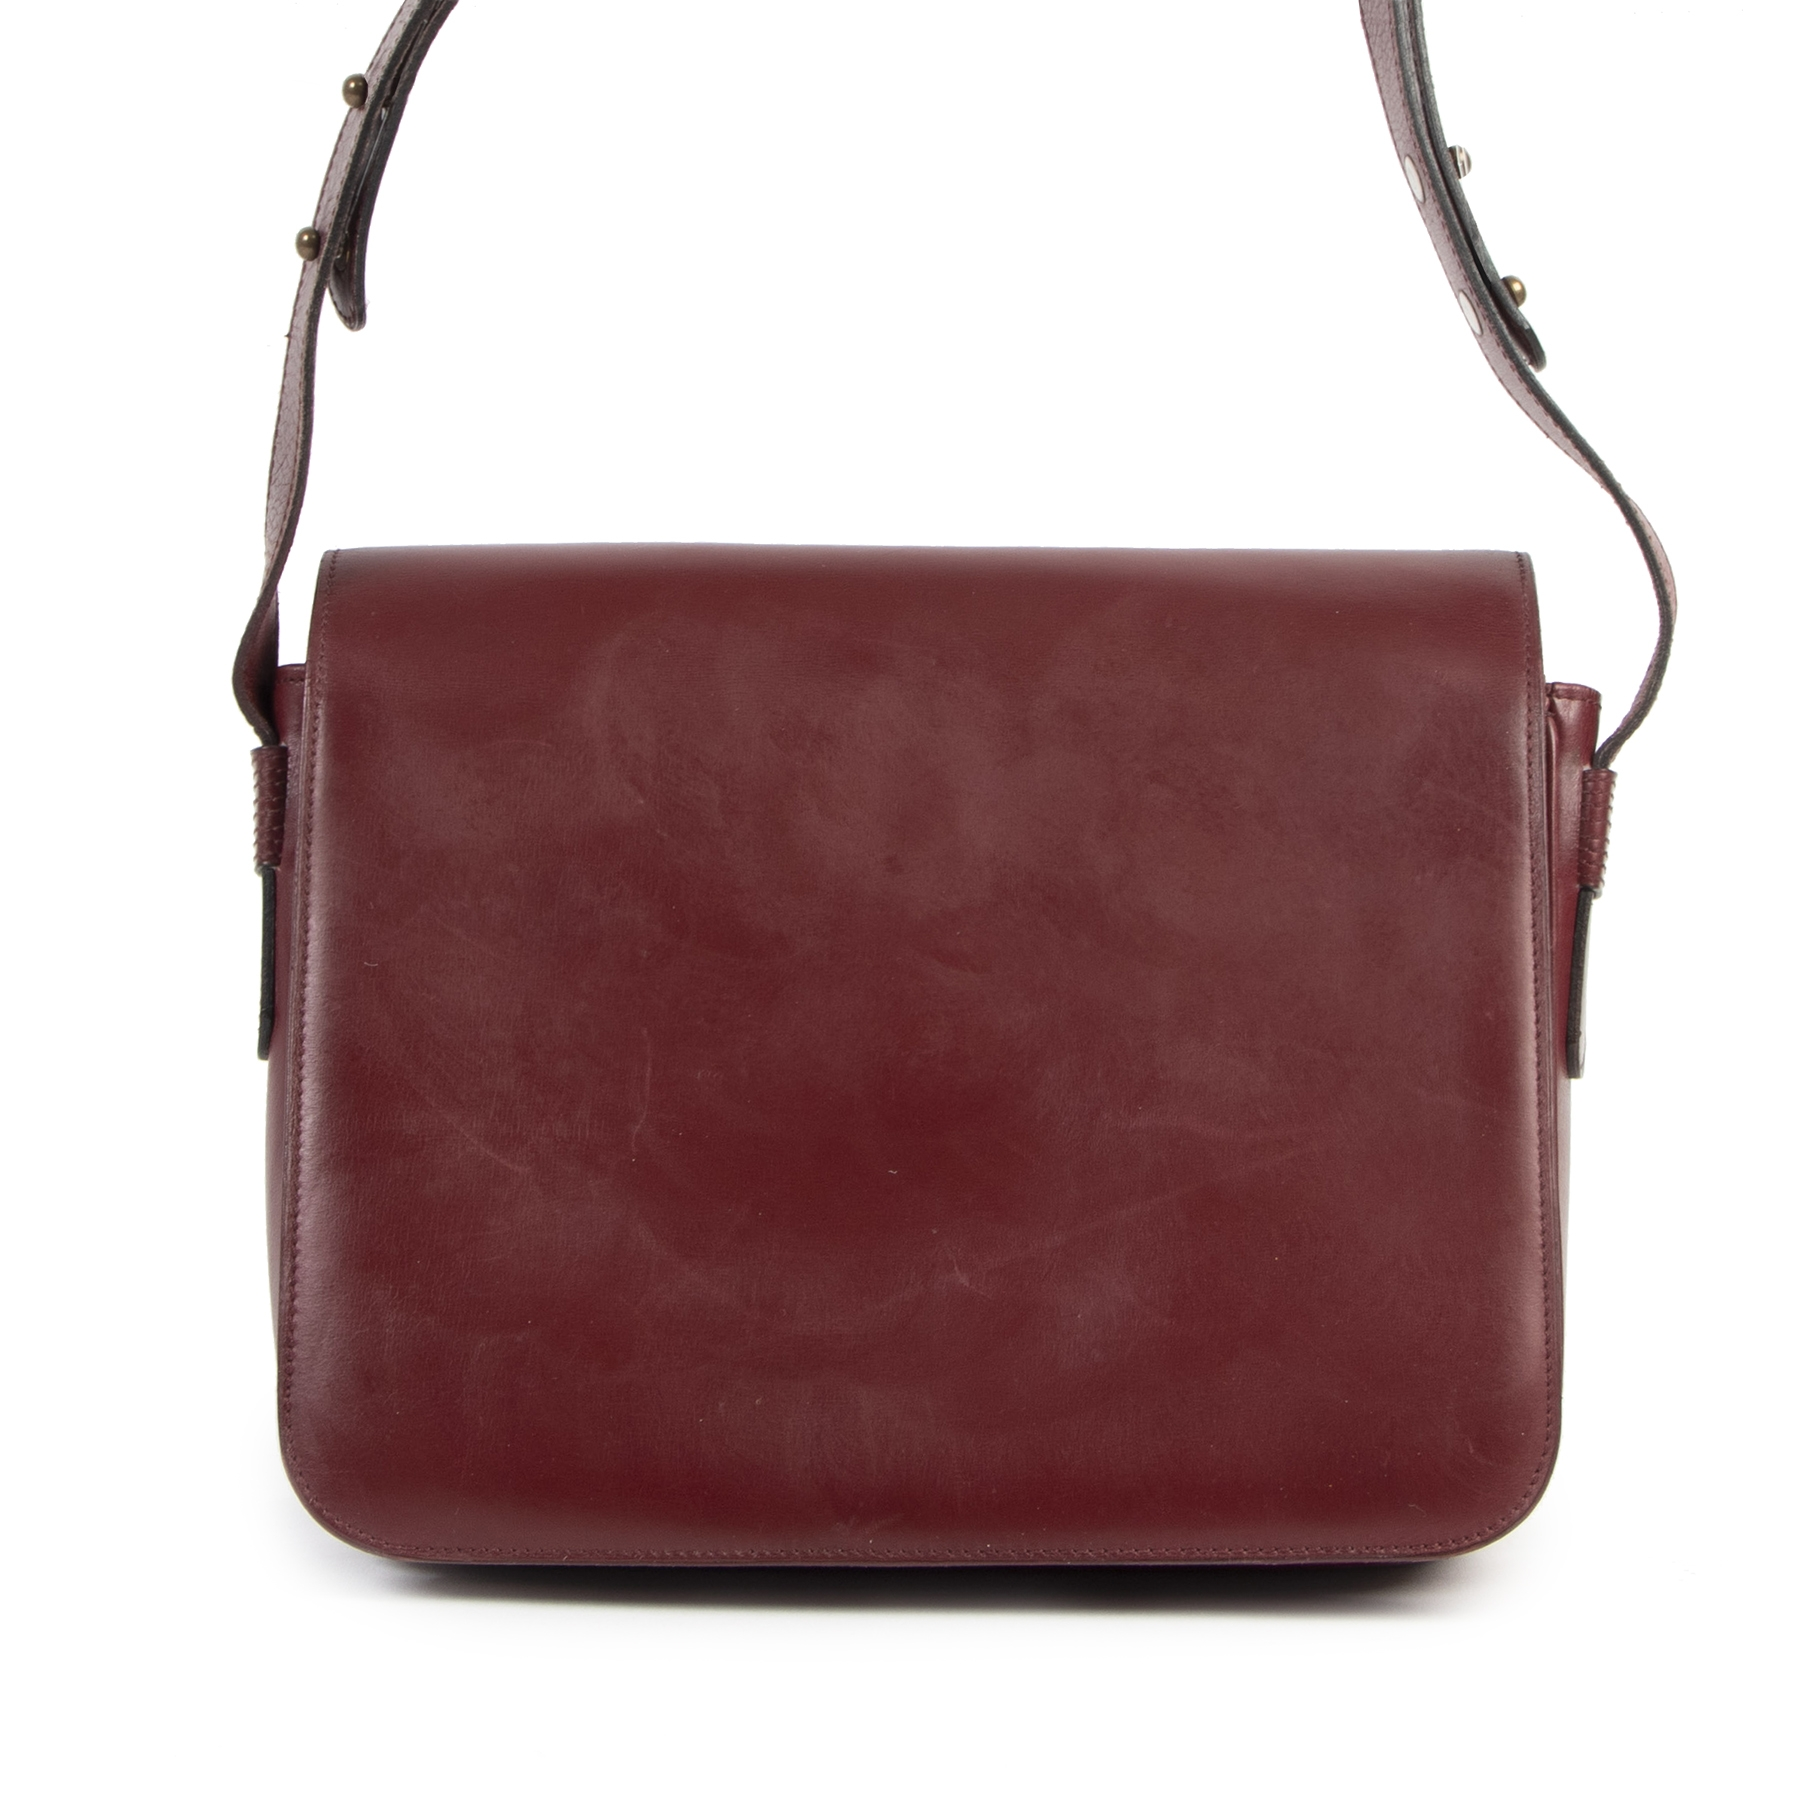 Delvaux Burgundy Leather Shoulder Bag